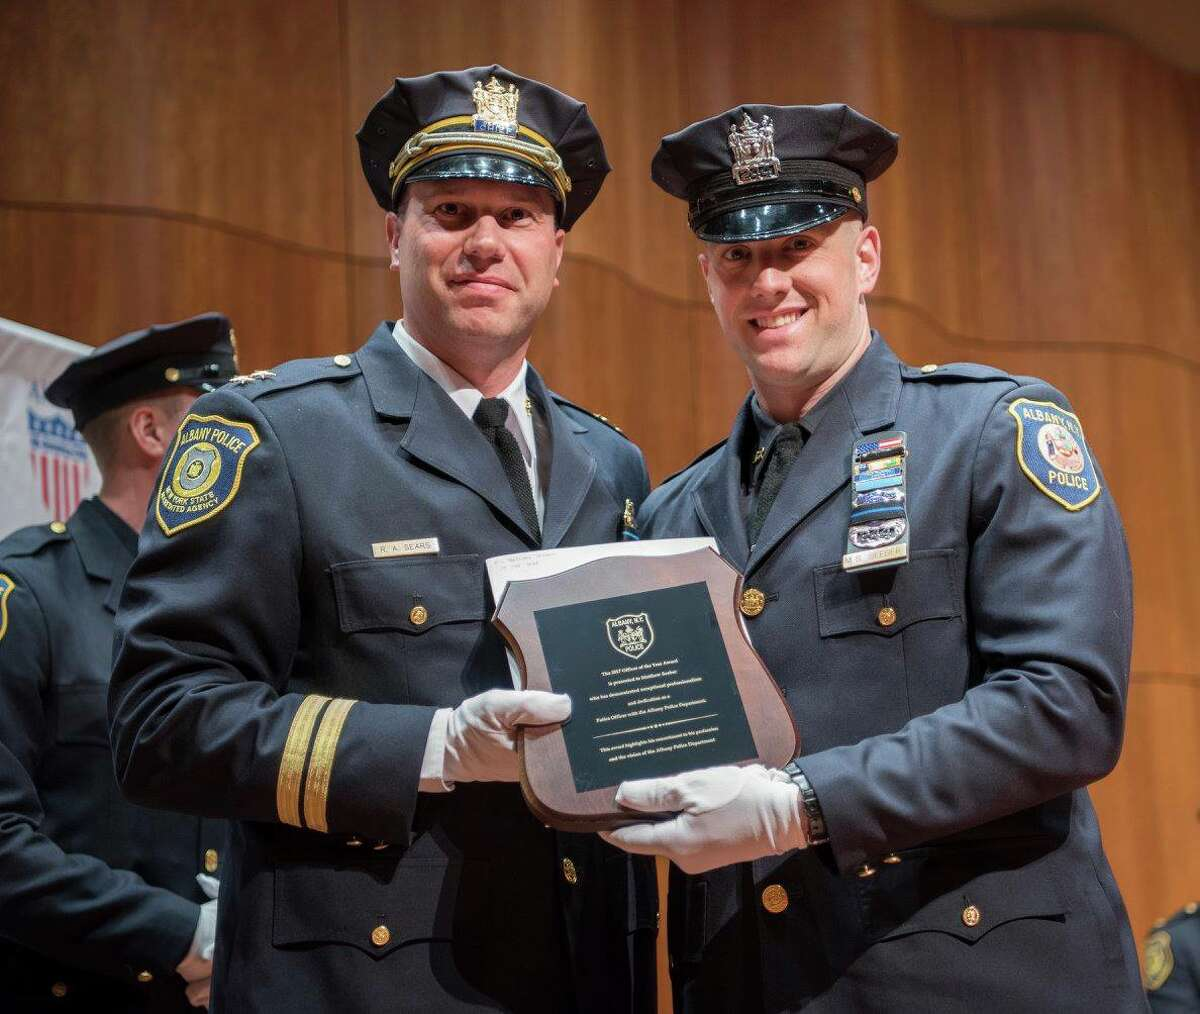 Matthew Seeber, right, receives the Officer of the Year Award from the Albany Police Department on May 15, 2018.